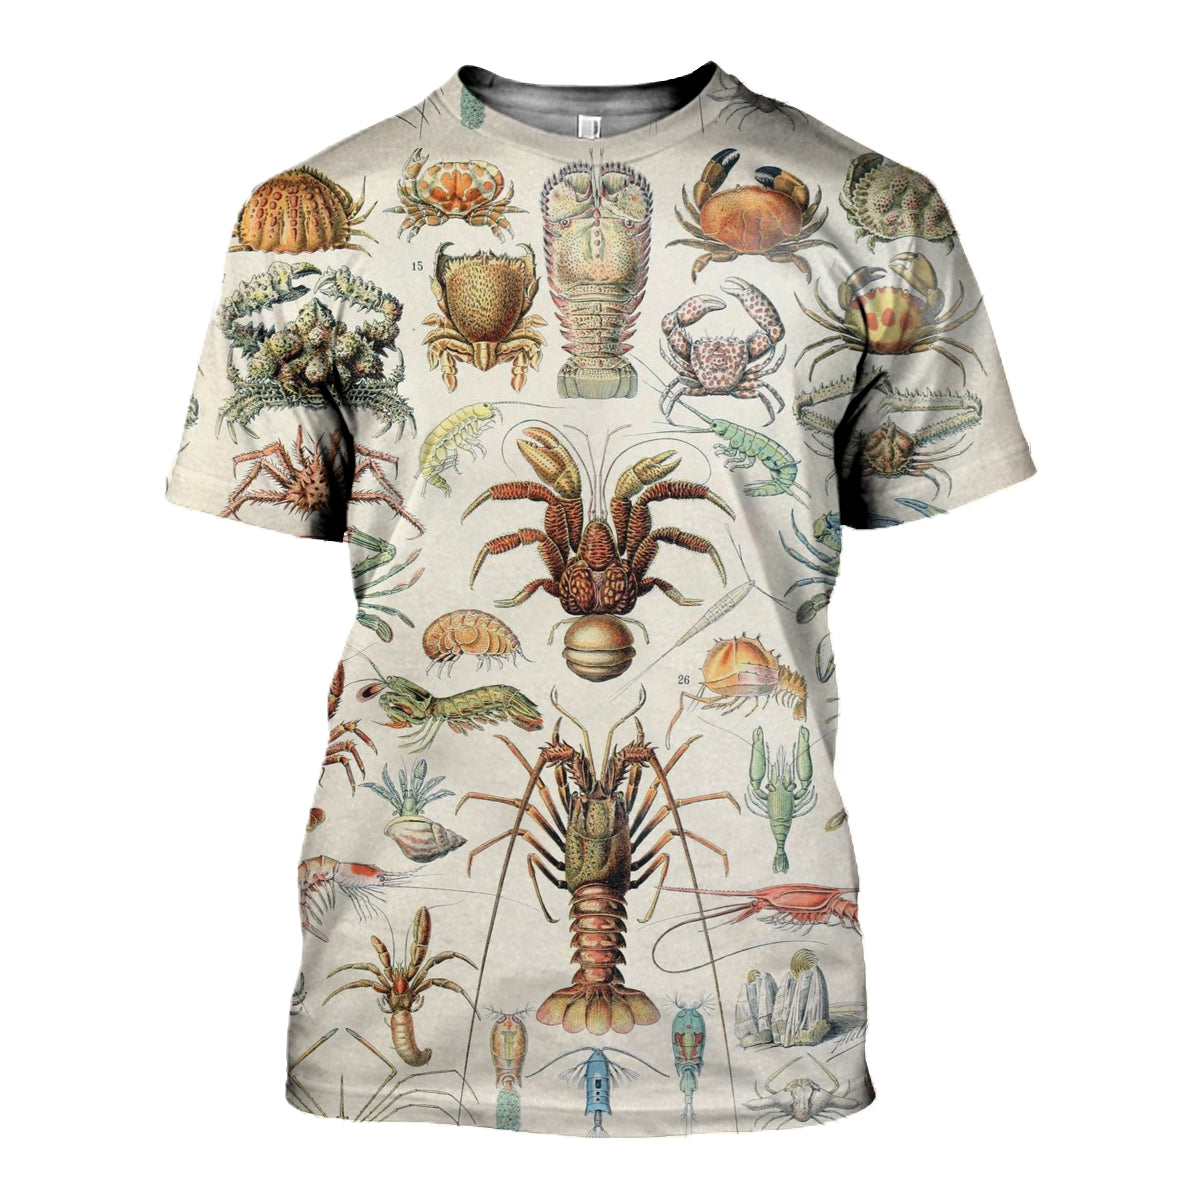 3D All Over Printed Sea Crustaceans Shirts and Shorts - gopowear.com